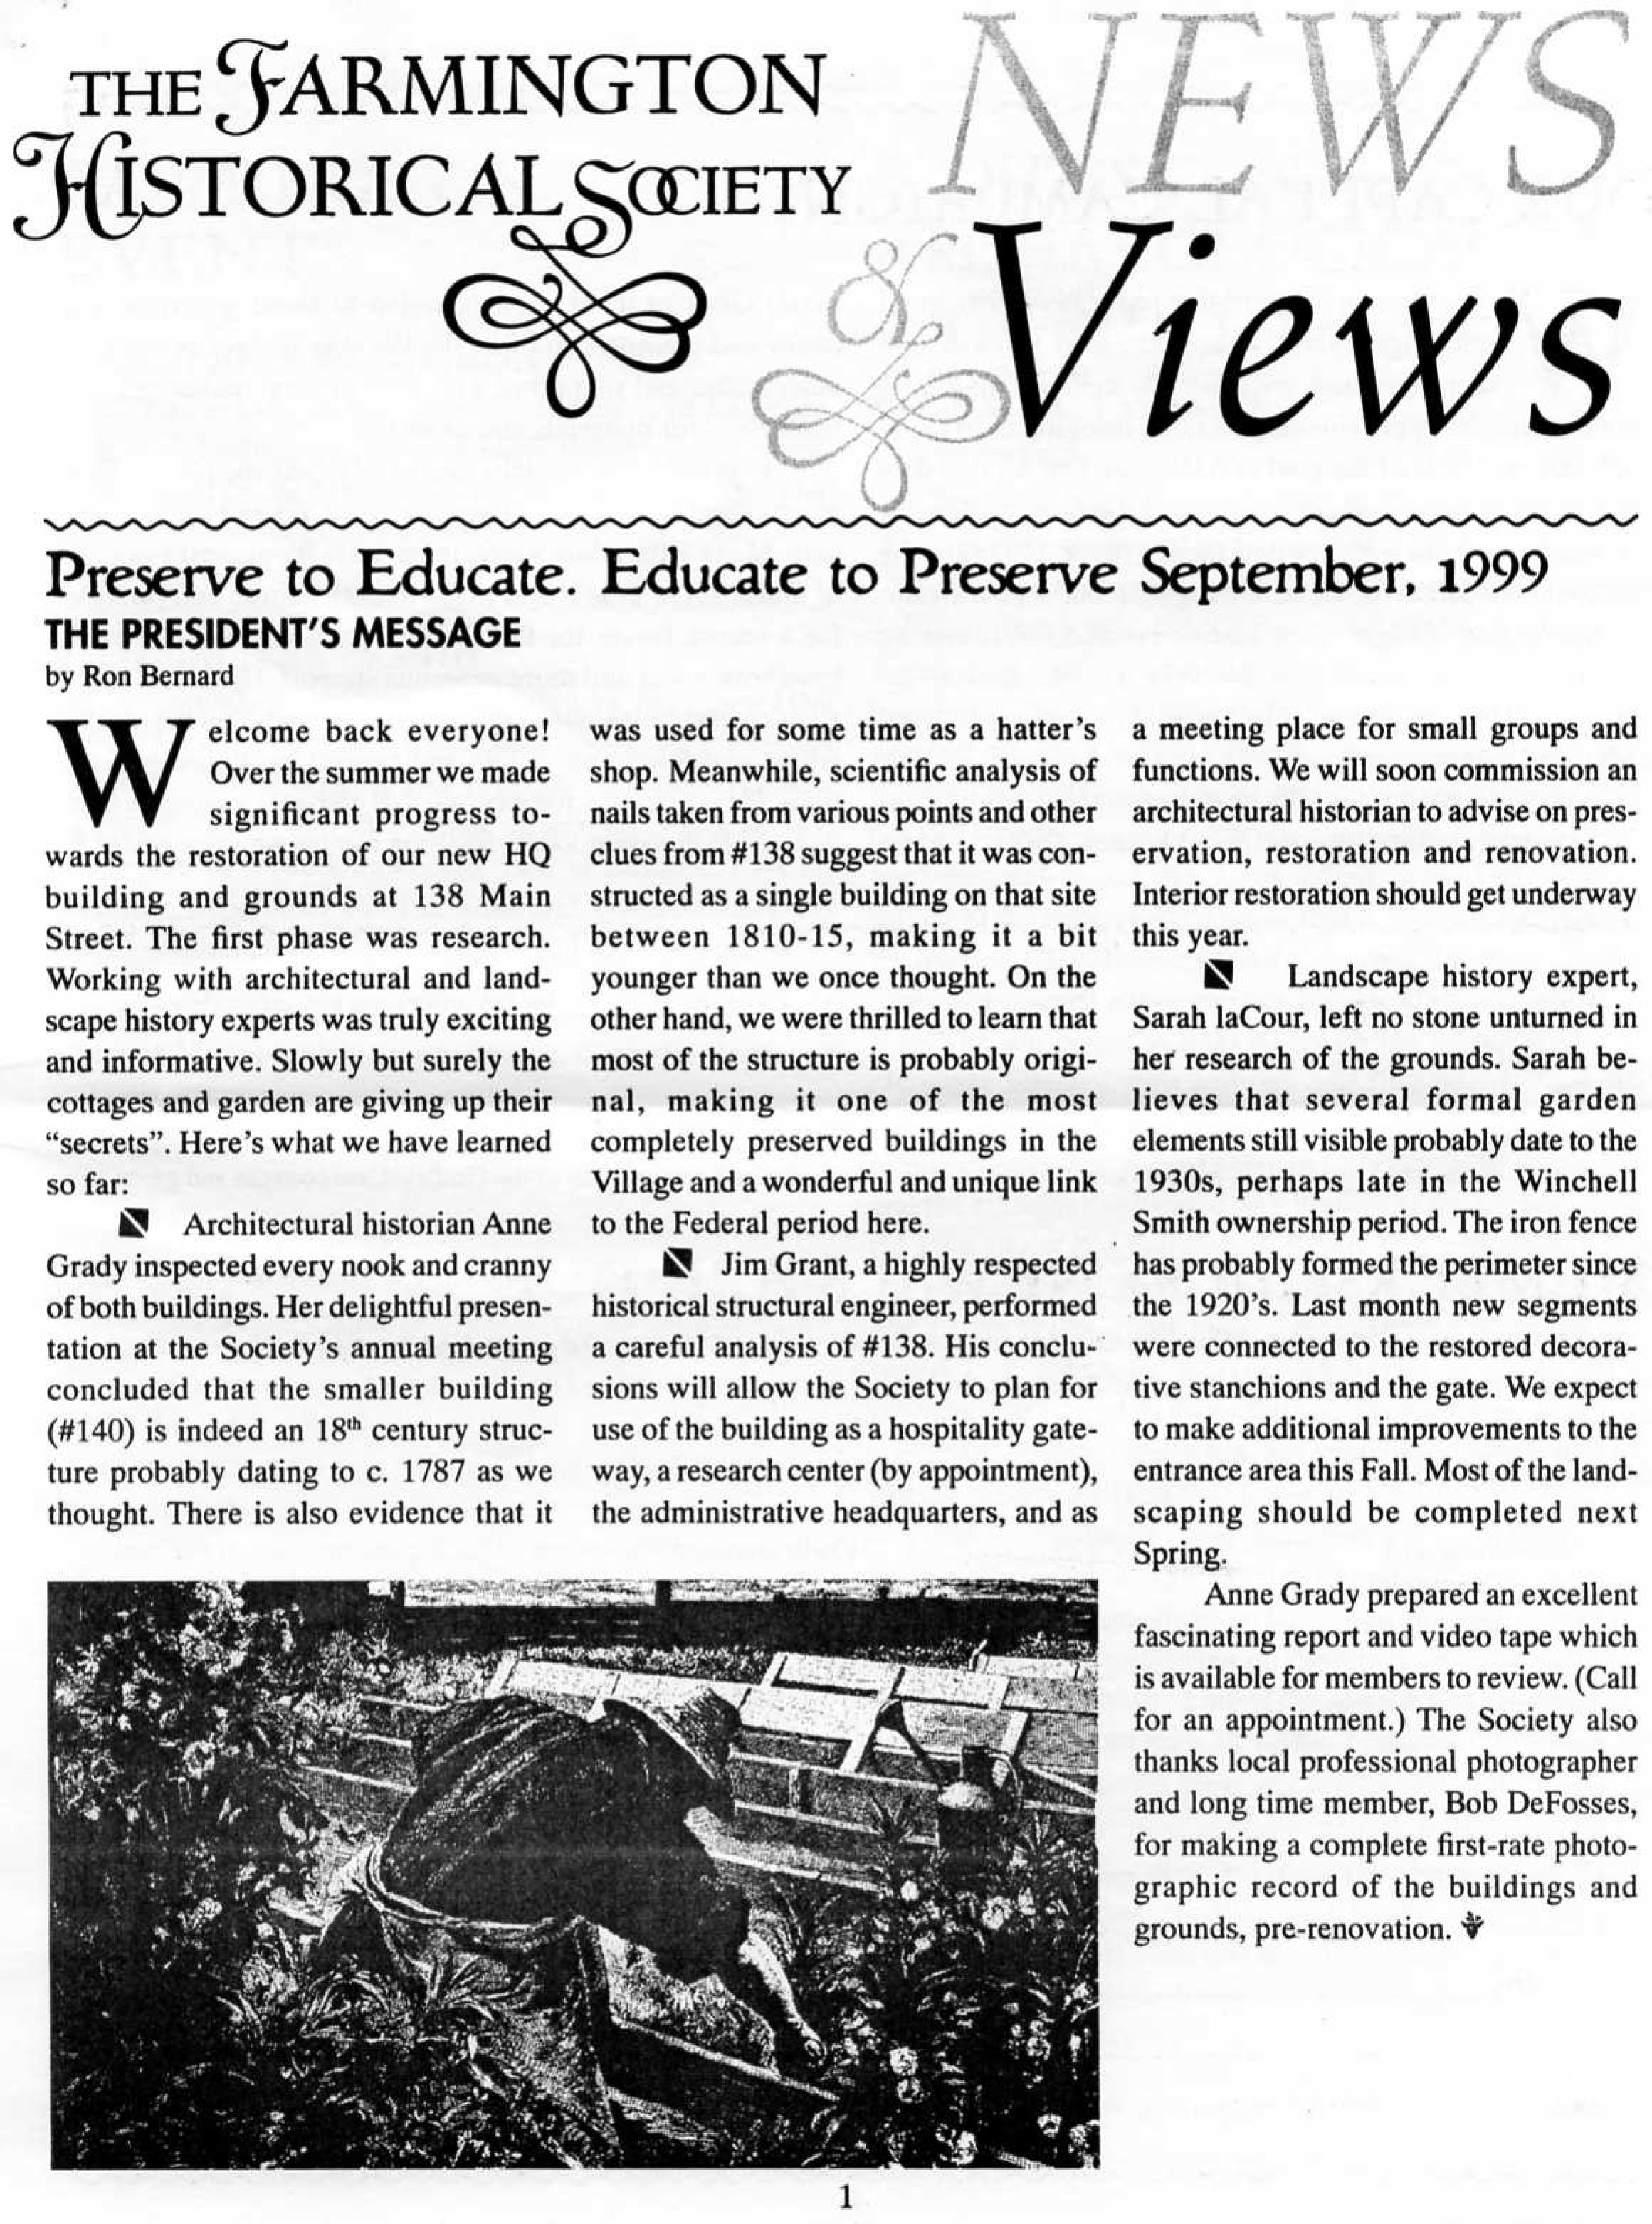 http://fhs-ct.org/1999/09/10/september-1999-newsletter-2/